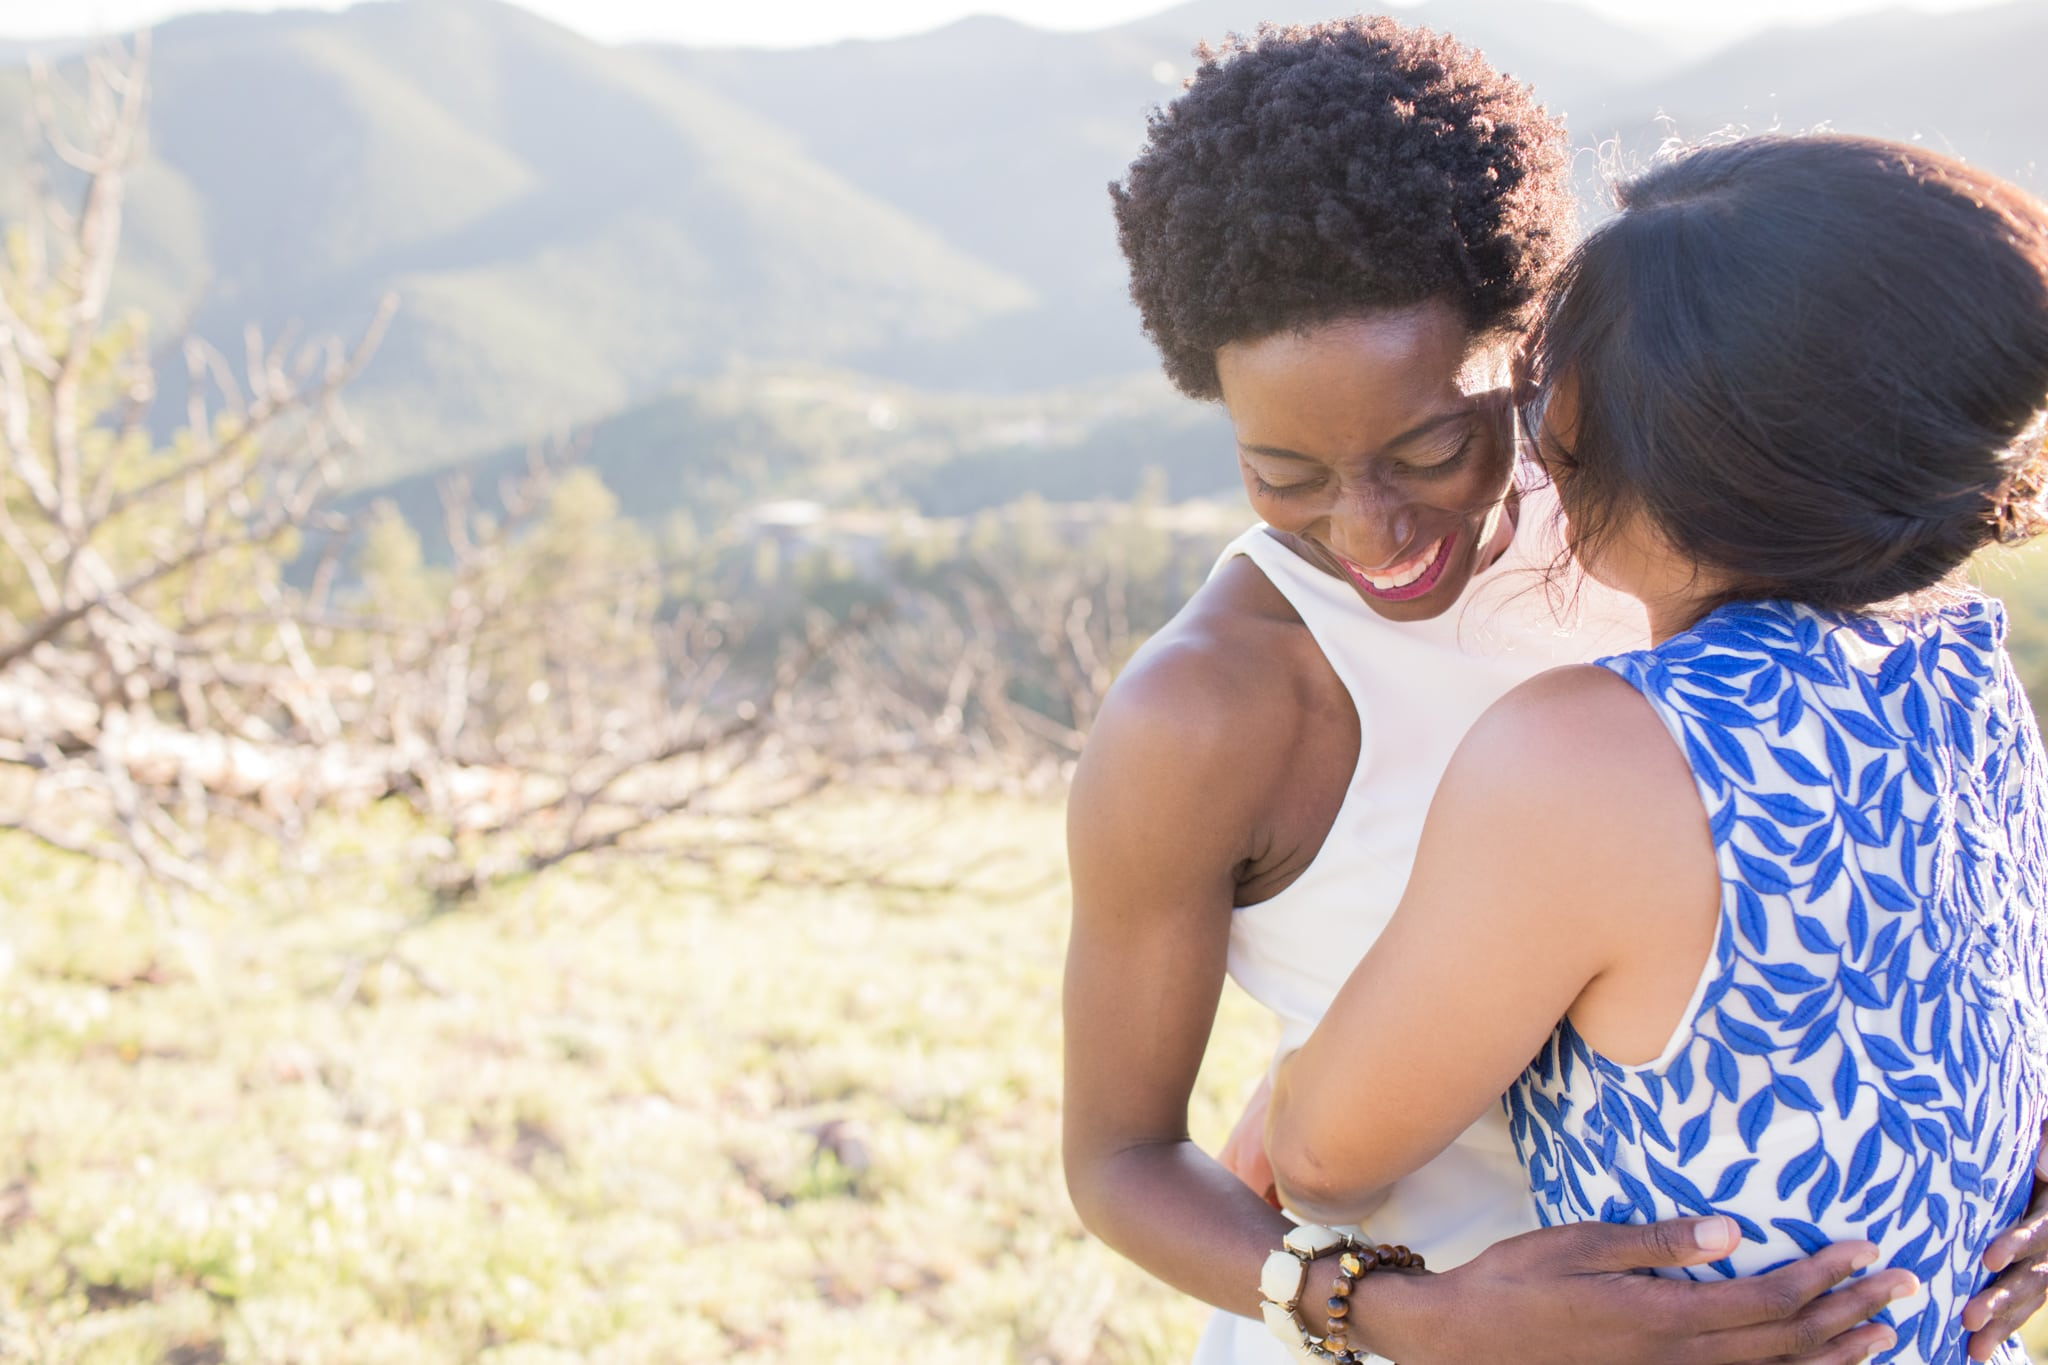 Two women embrace in front of a mountain